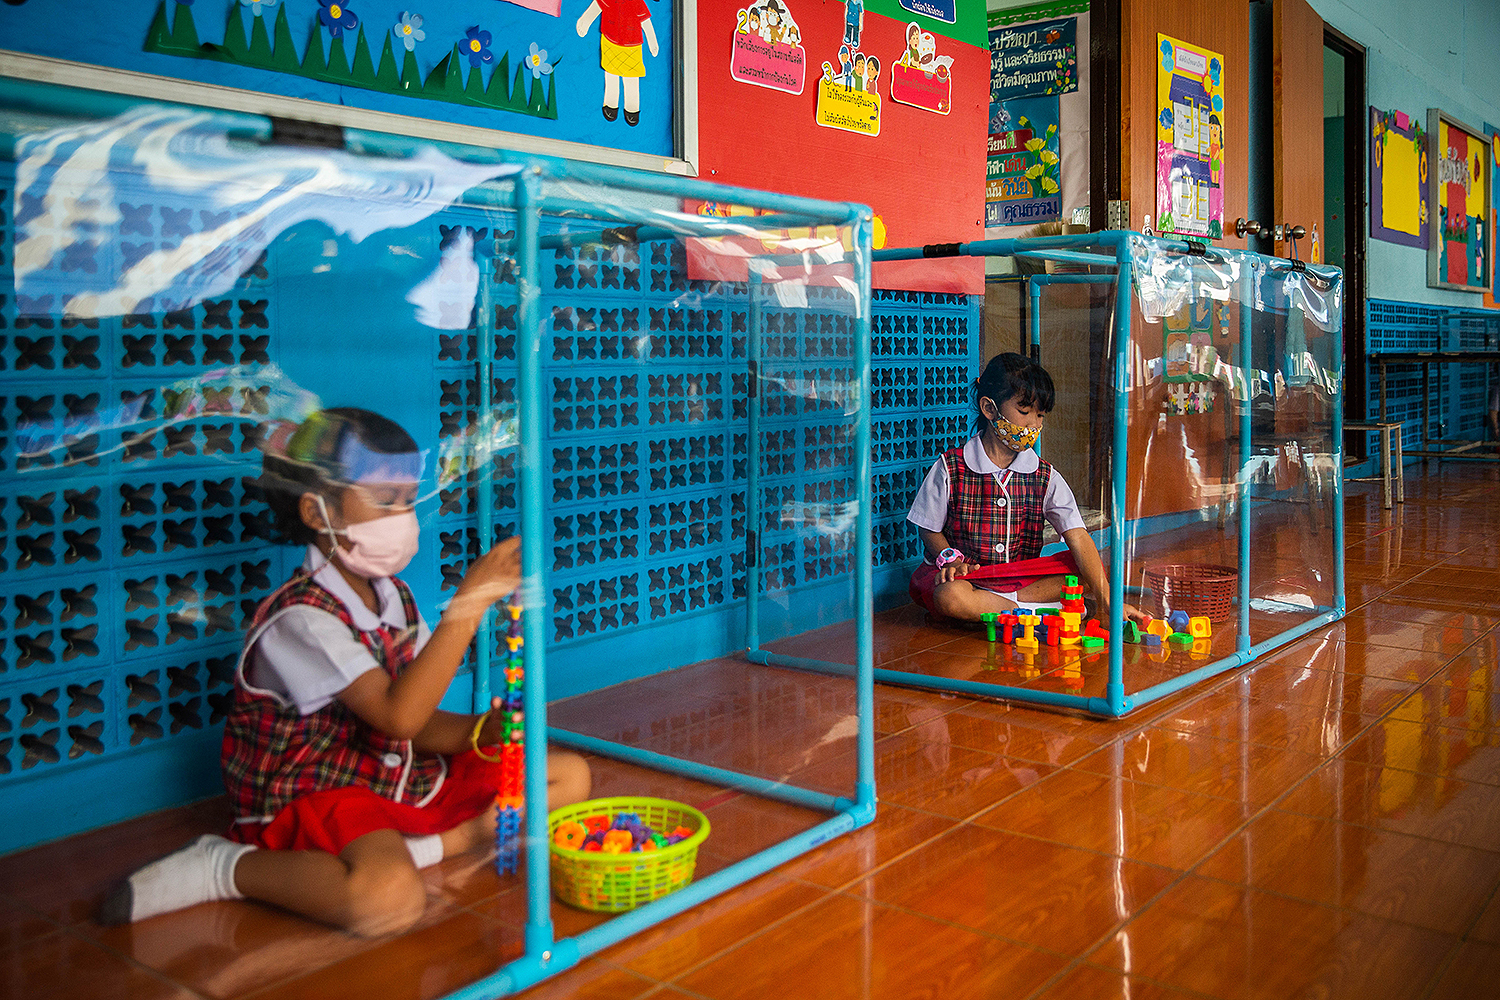 Kindergarteners wear face masks as they play by themselves in screened-in areas at the Wat Khlong Toey School in Bangkok on Aug. 10. In early July, the school reopened its doors after being closed since March because of the COVID-19 pandemic. Lauren DeCicca/Getty Images